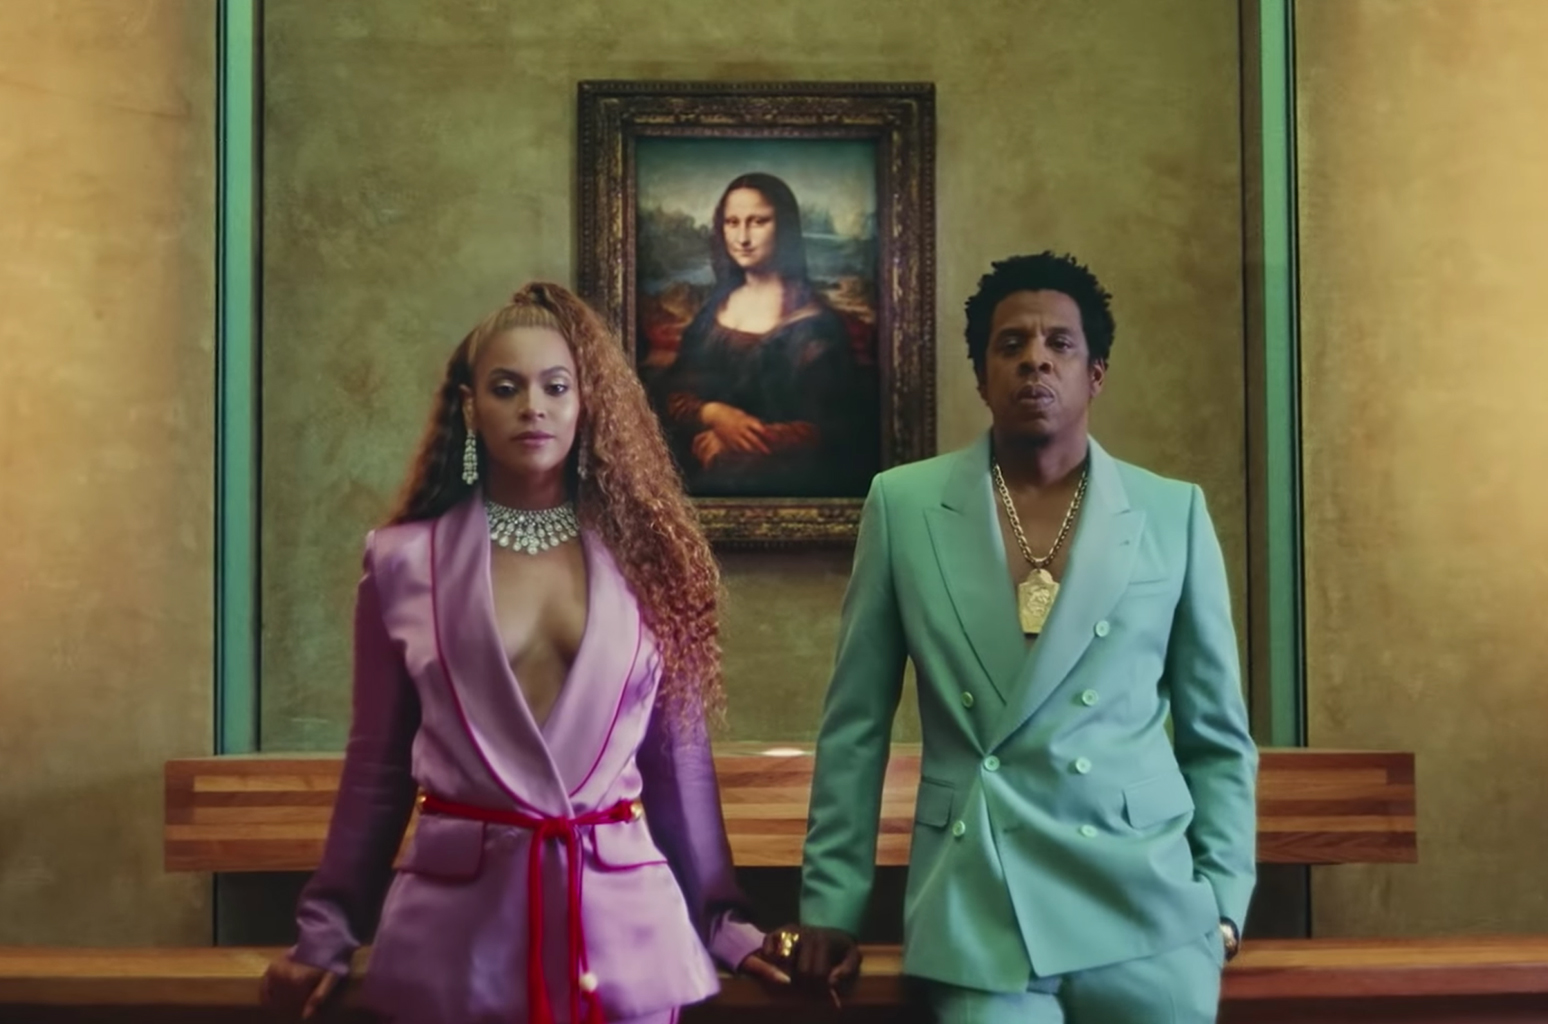 BEYONCE APESHIT ALREADY 9MILLION PLUS VIEWS IN 24 HOURS